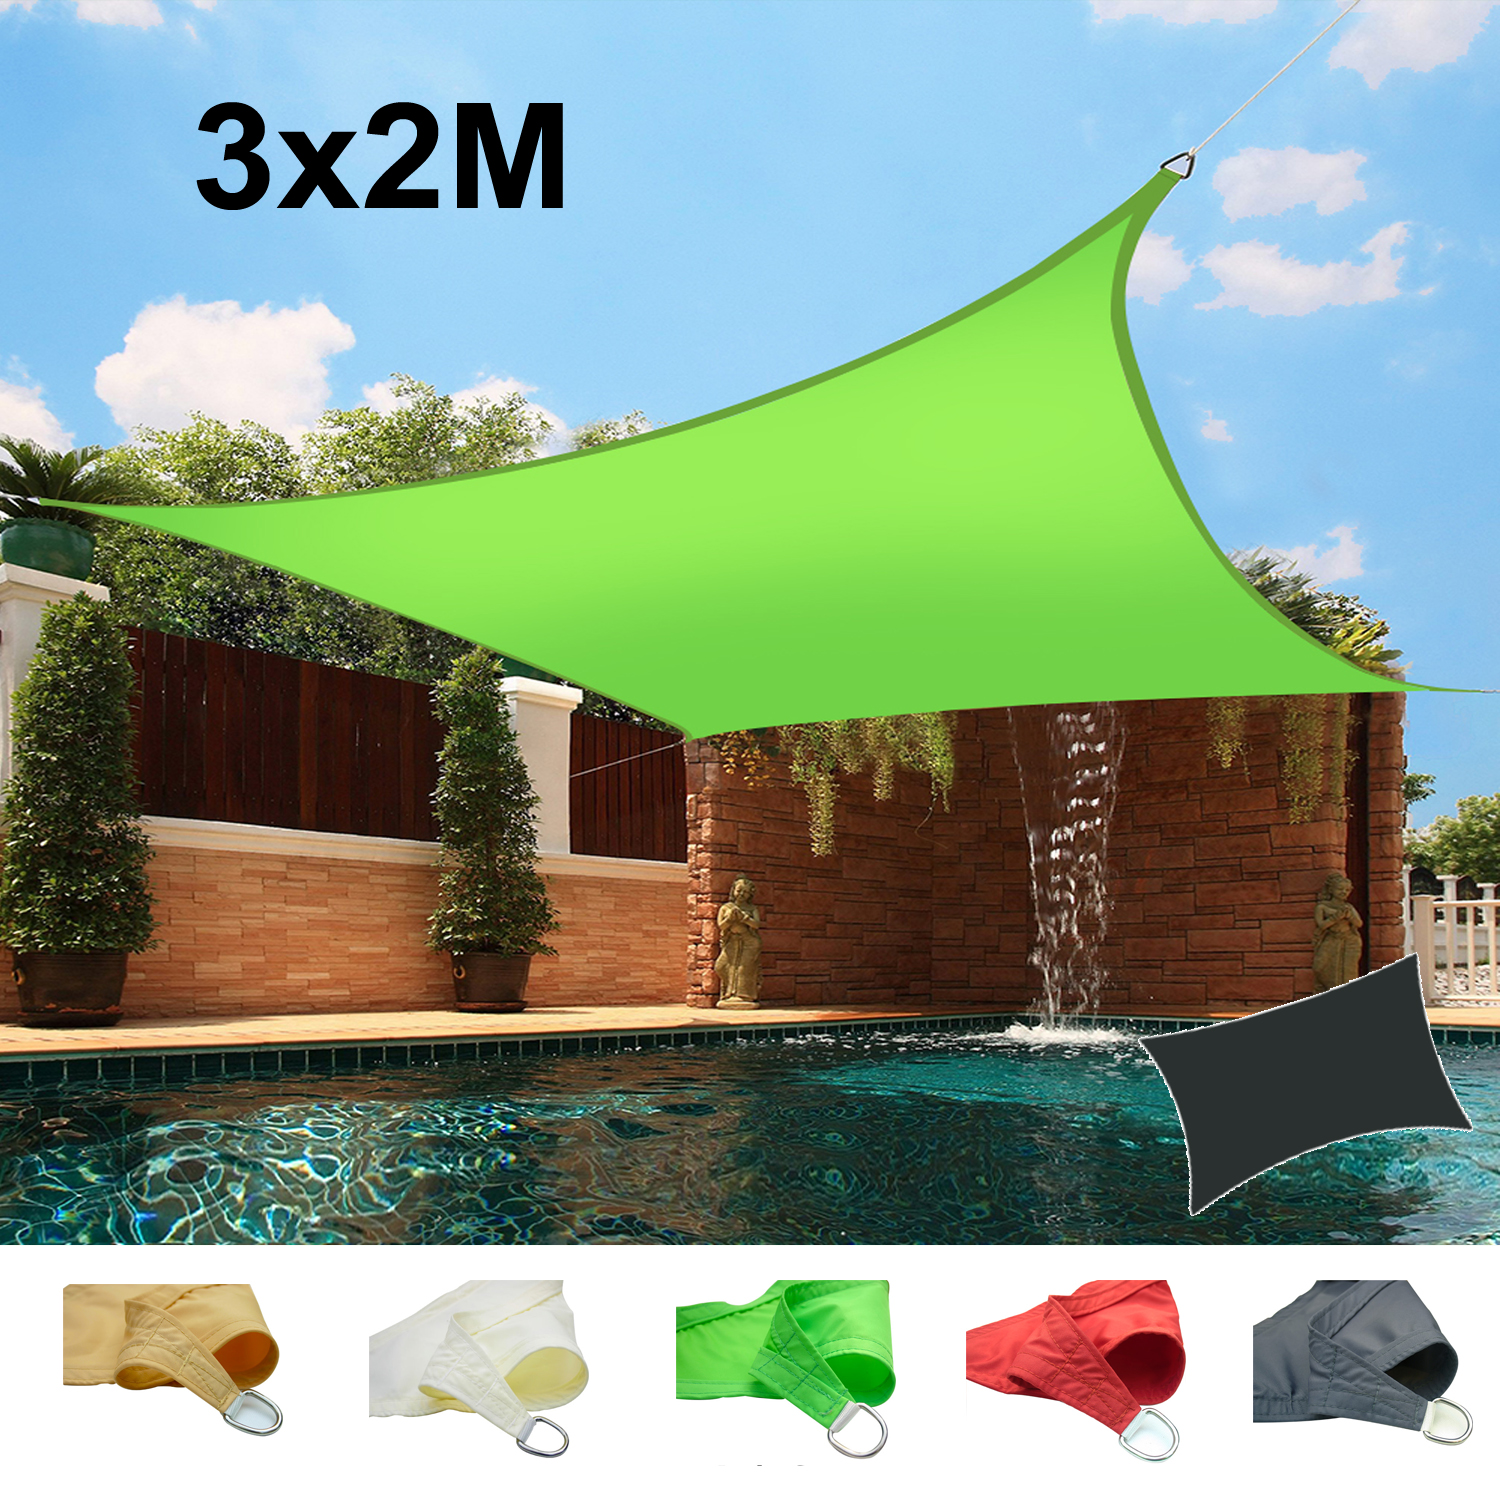 3m x 2m sun shade sail garden patio awning canopy screen for Colorado shade sail